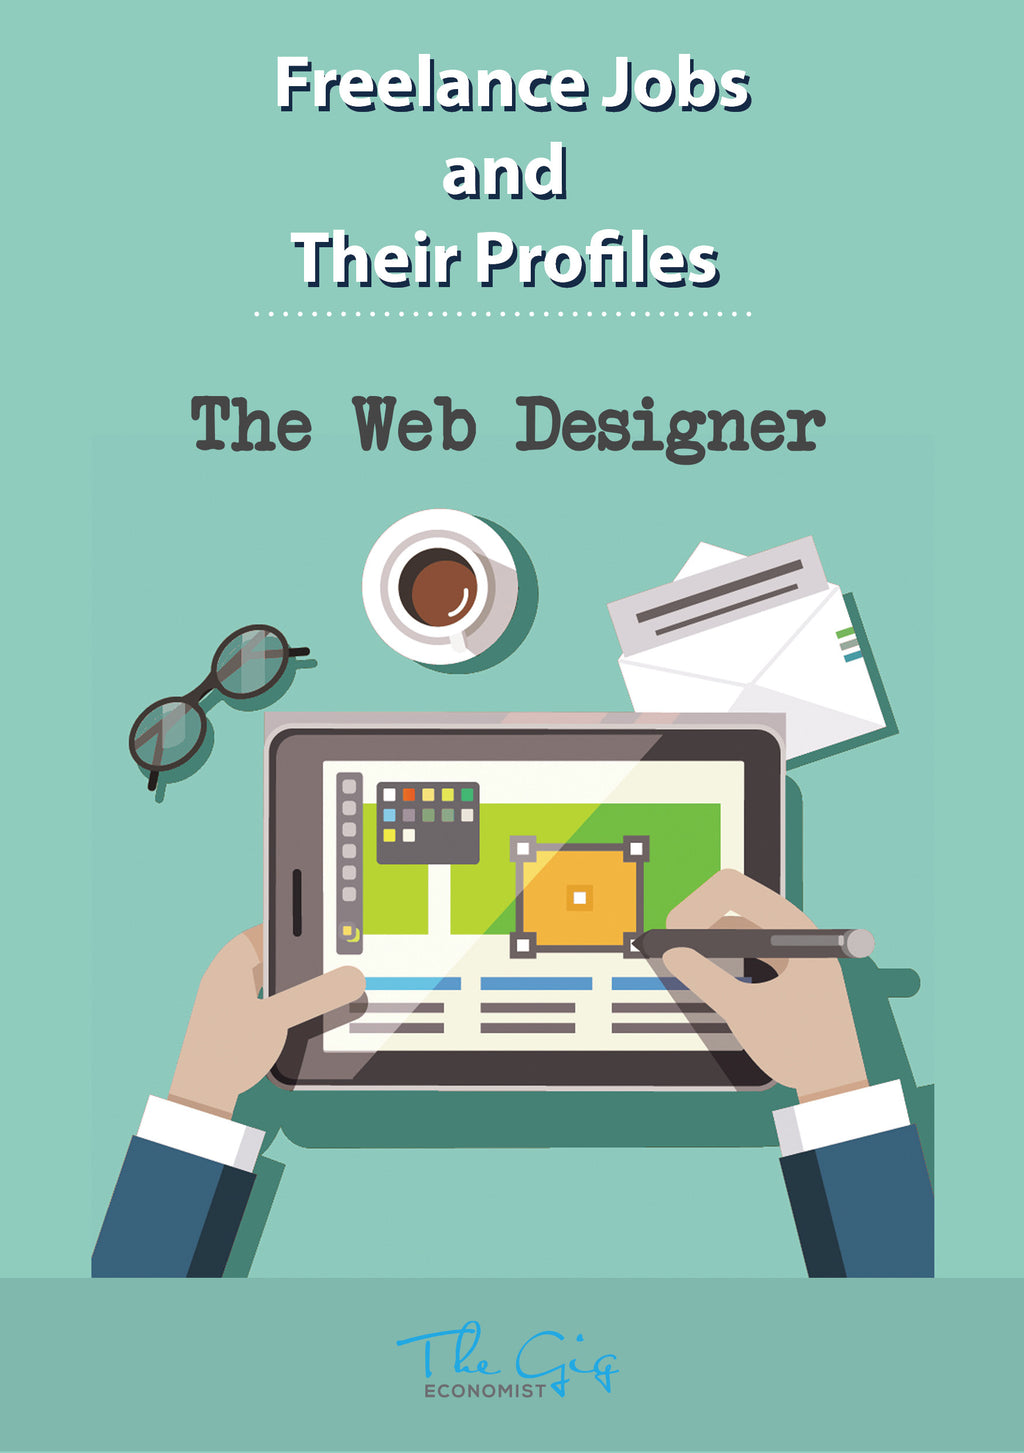 Freelance Web Designer Job Profile | The Gig Economist